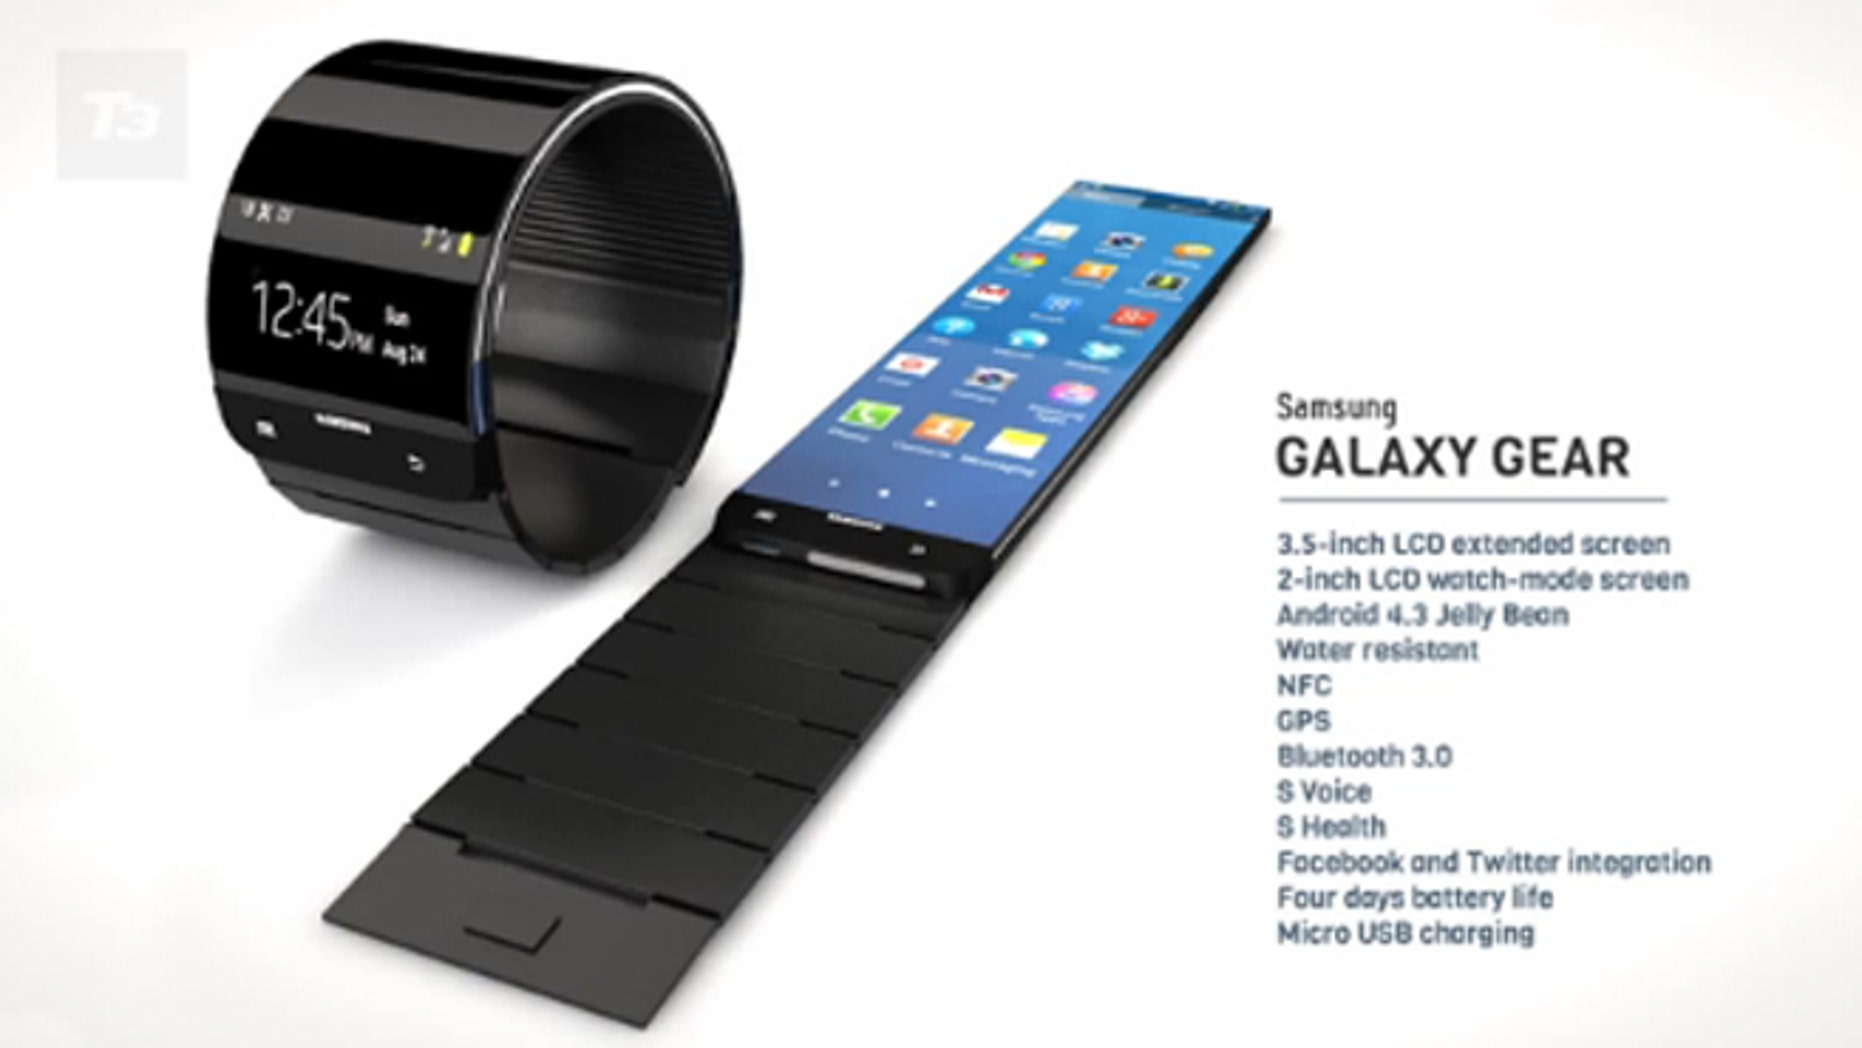 An unofficial rendering of Samsung's rumored Galaxy Gear smartwatch.